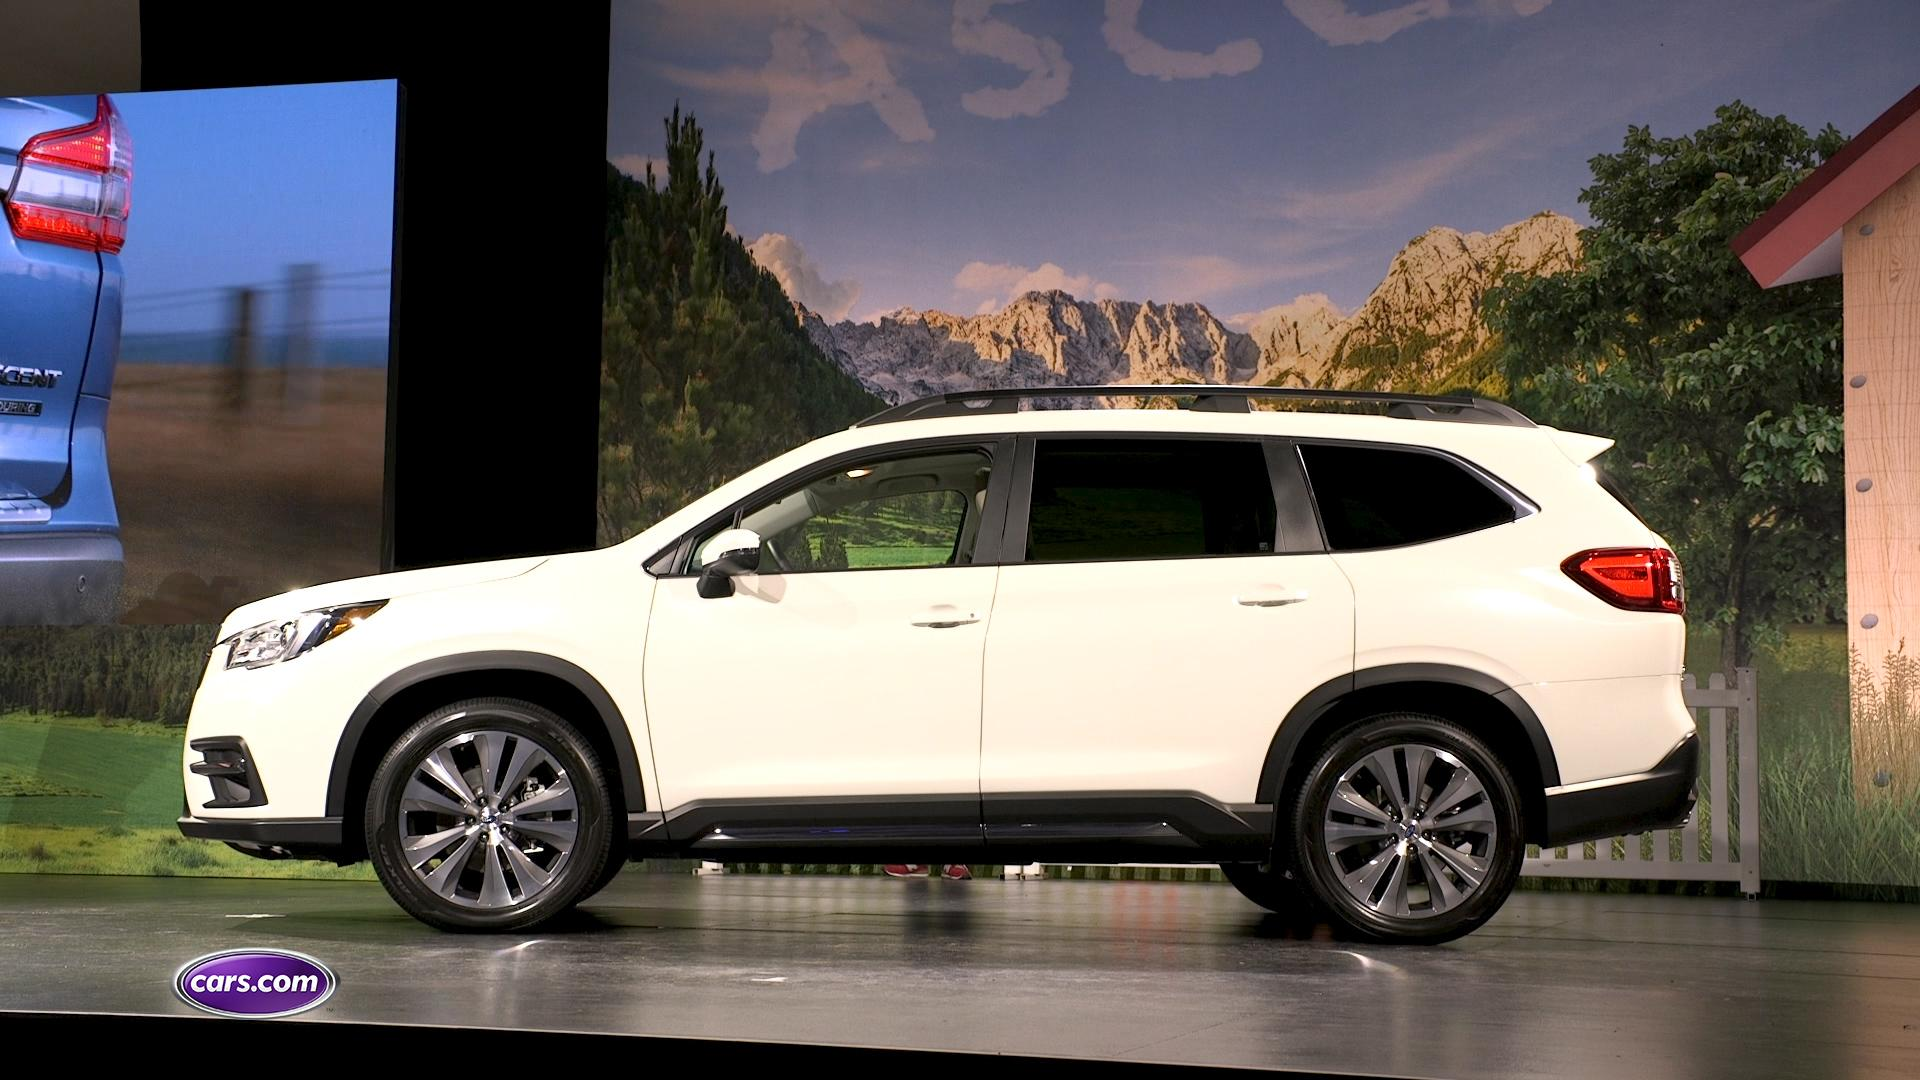 2019 Subaru Ascent Video